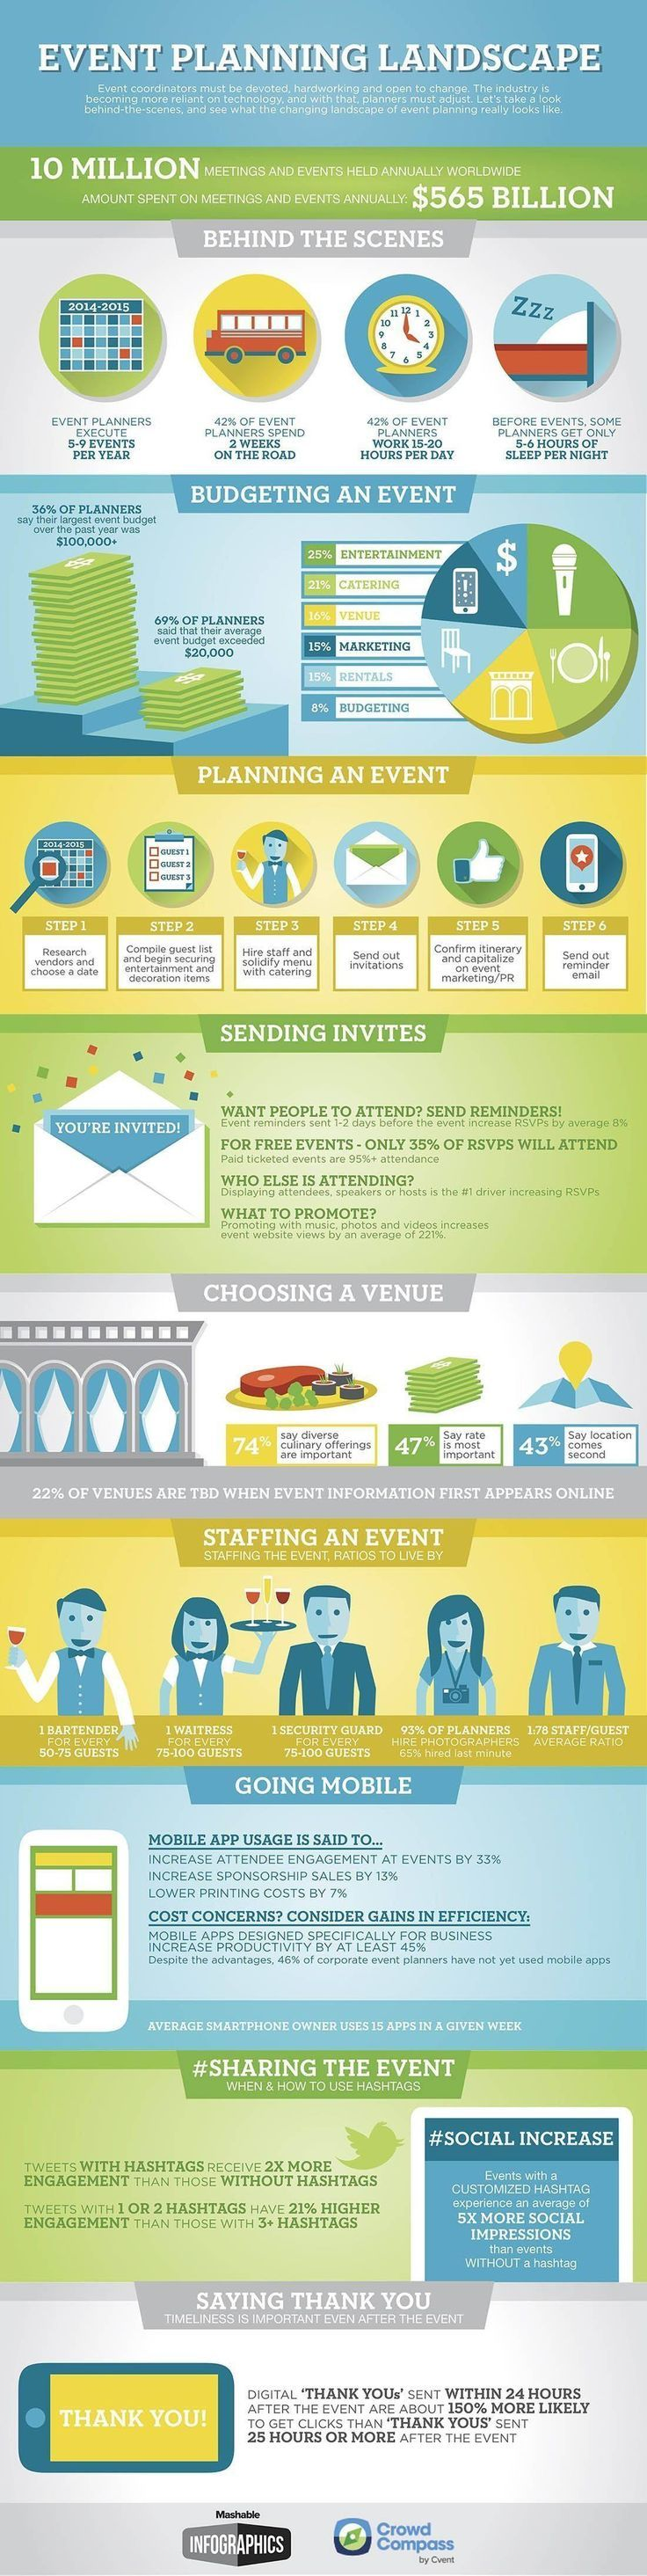 44 best event ideas images on pinterest event planners event